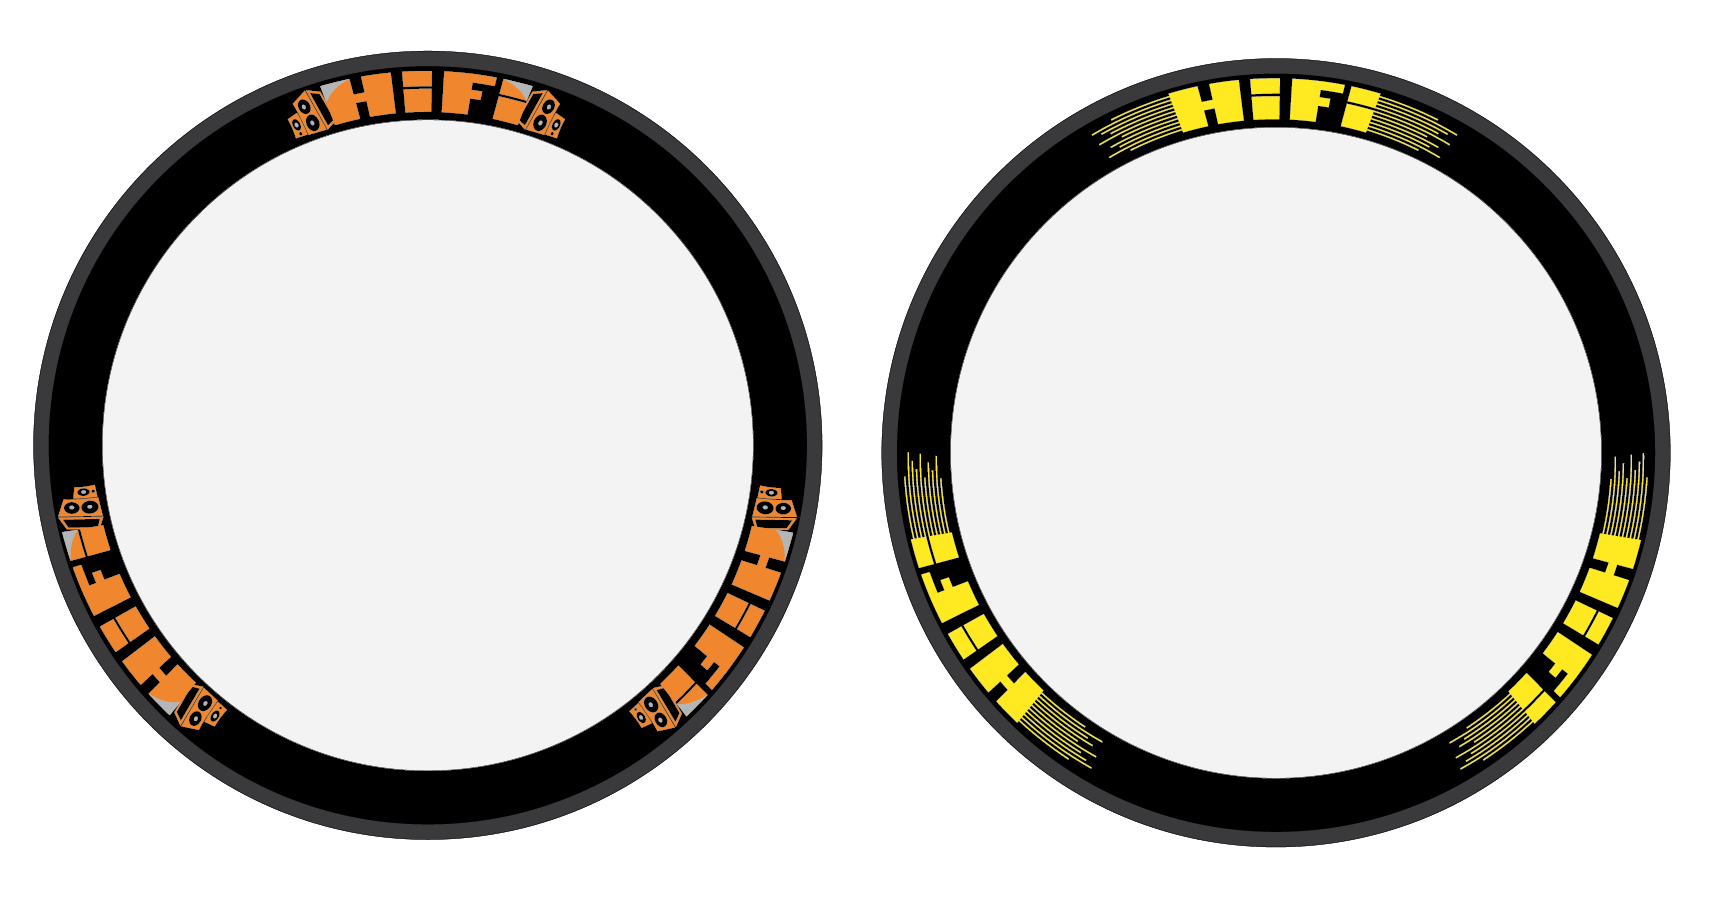 A color swap for our carbon session mtb rims with its shallower rim profile falls under the less expensive color logos for mix tape hootenanny